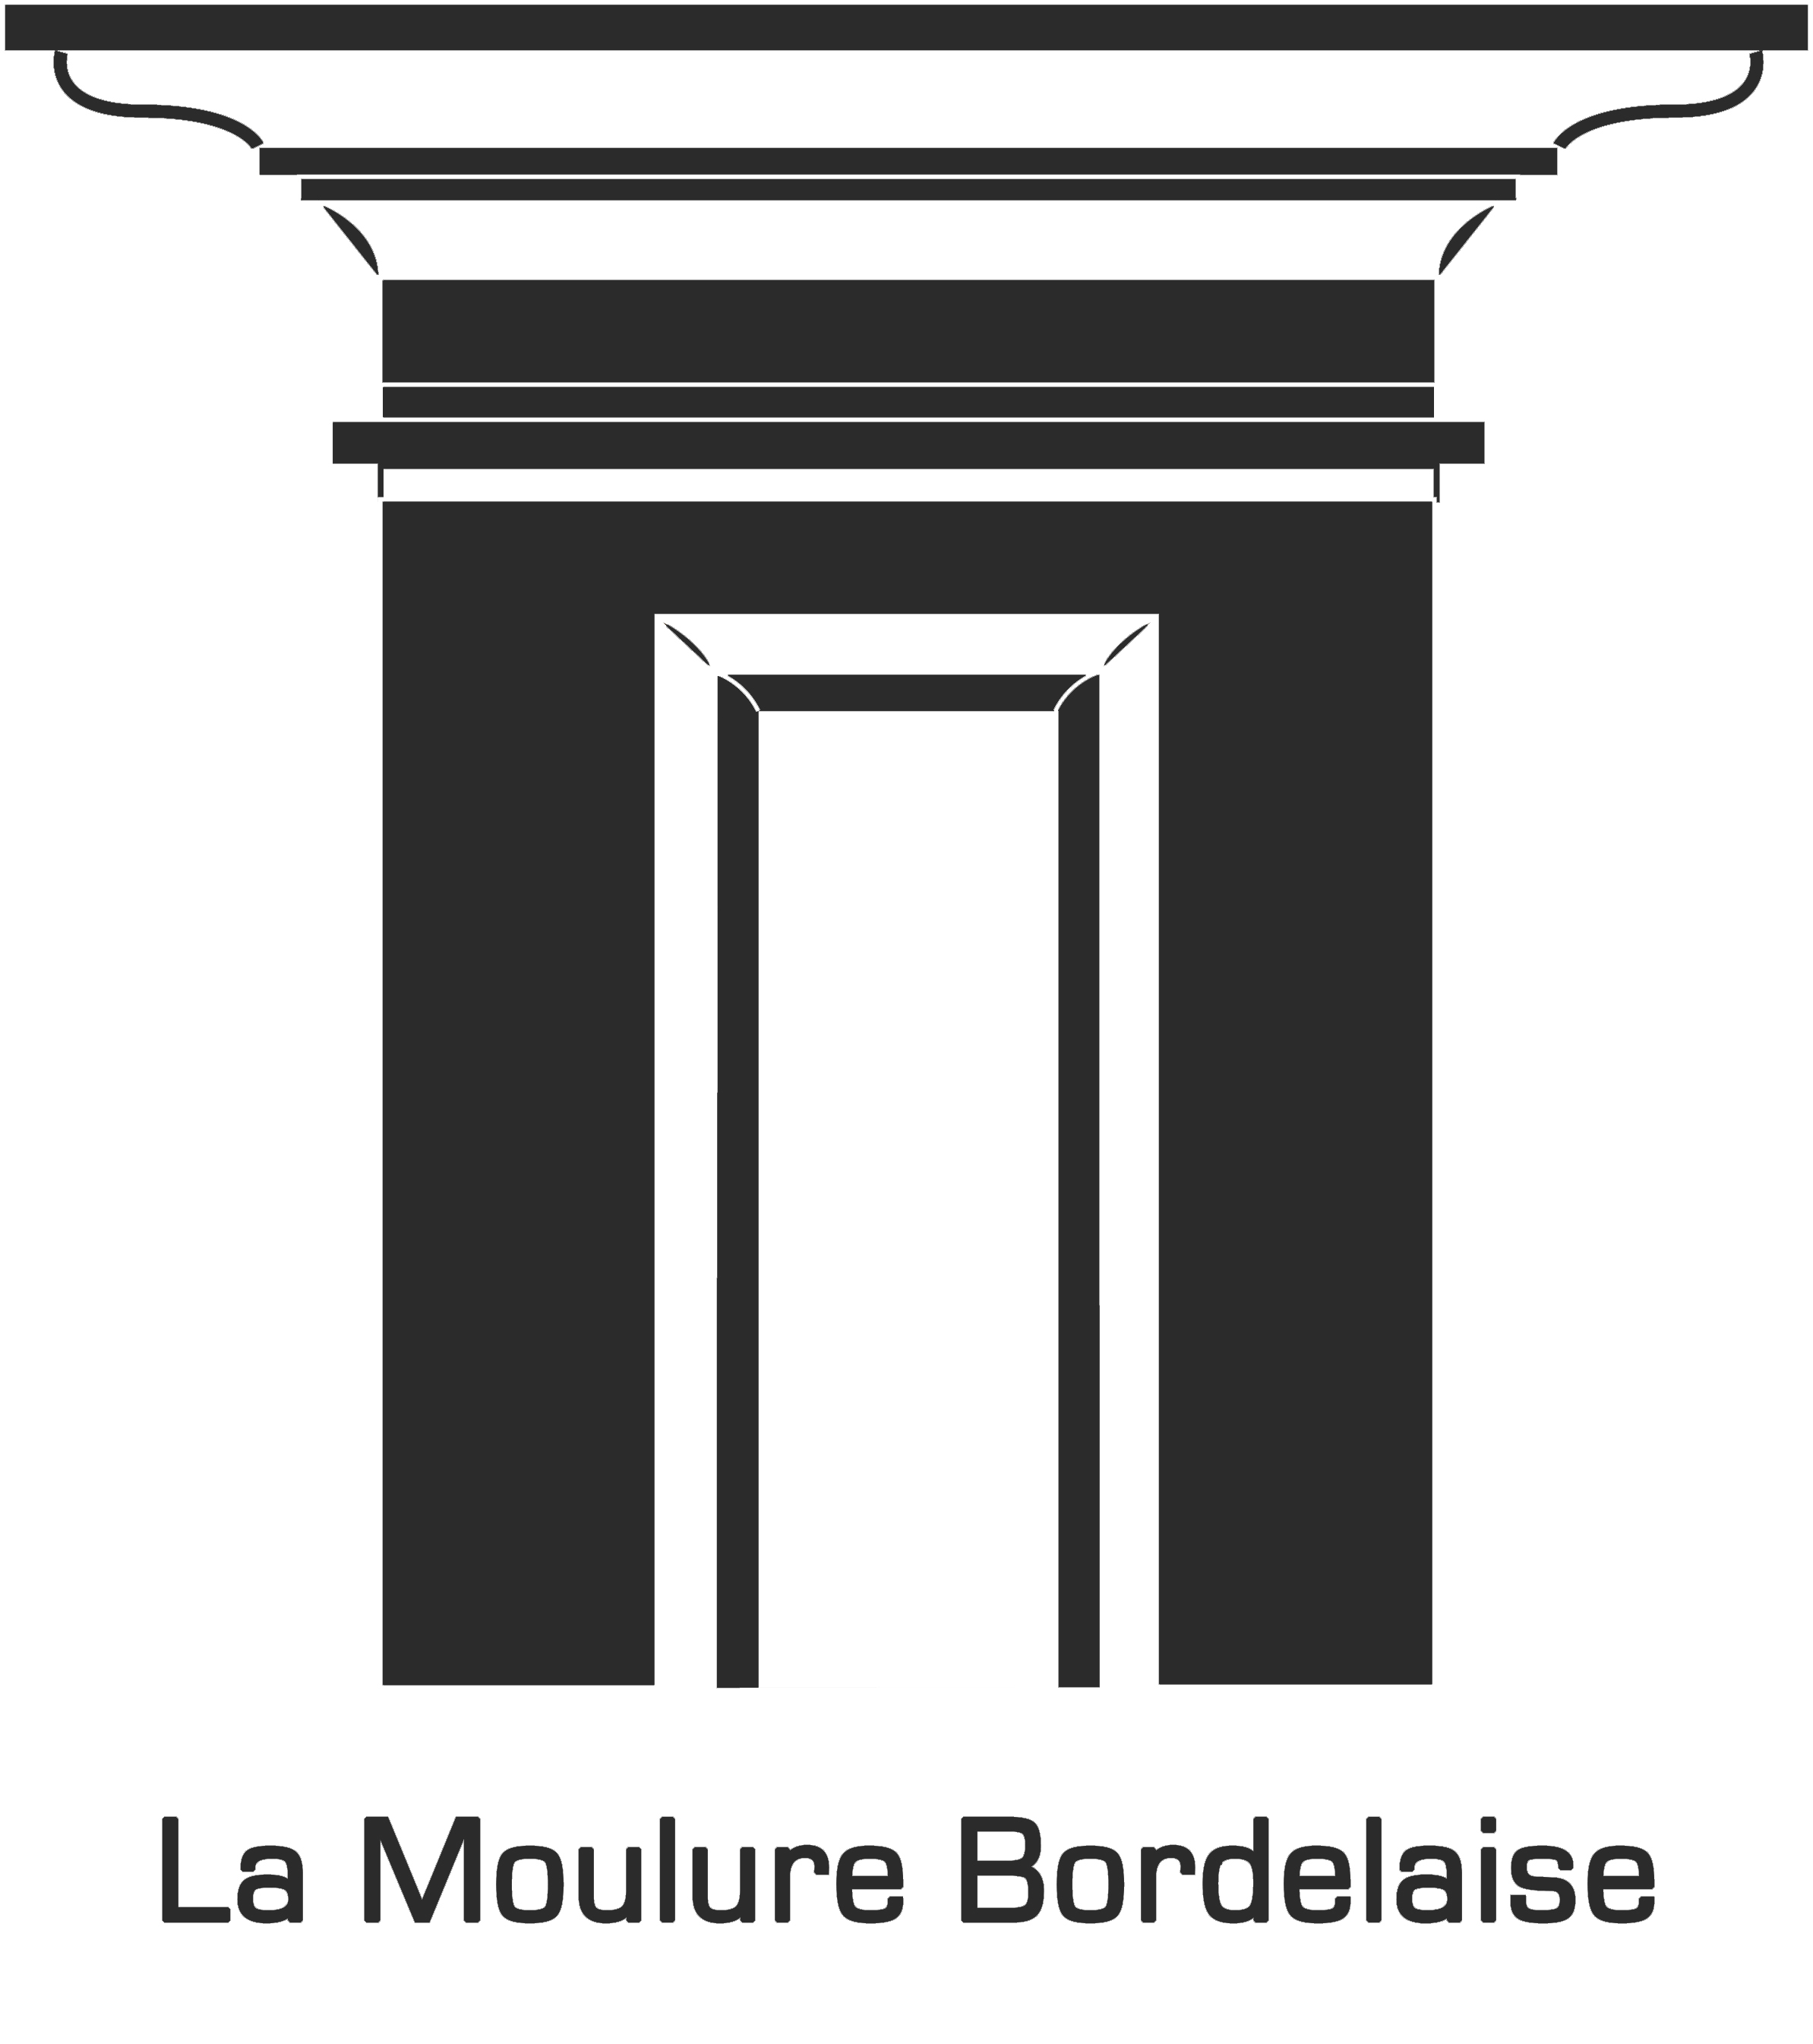 La moulure bordelaise vos projets bois for Moulures en bois decoratives